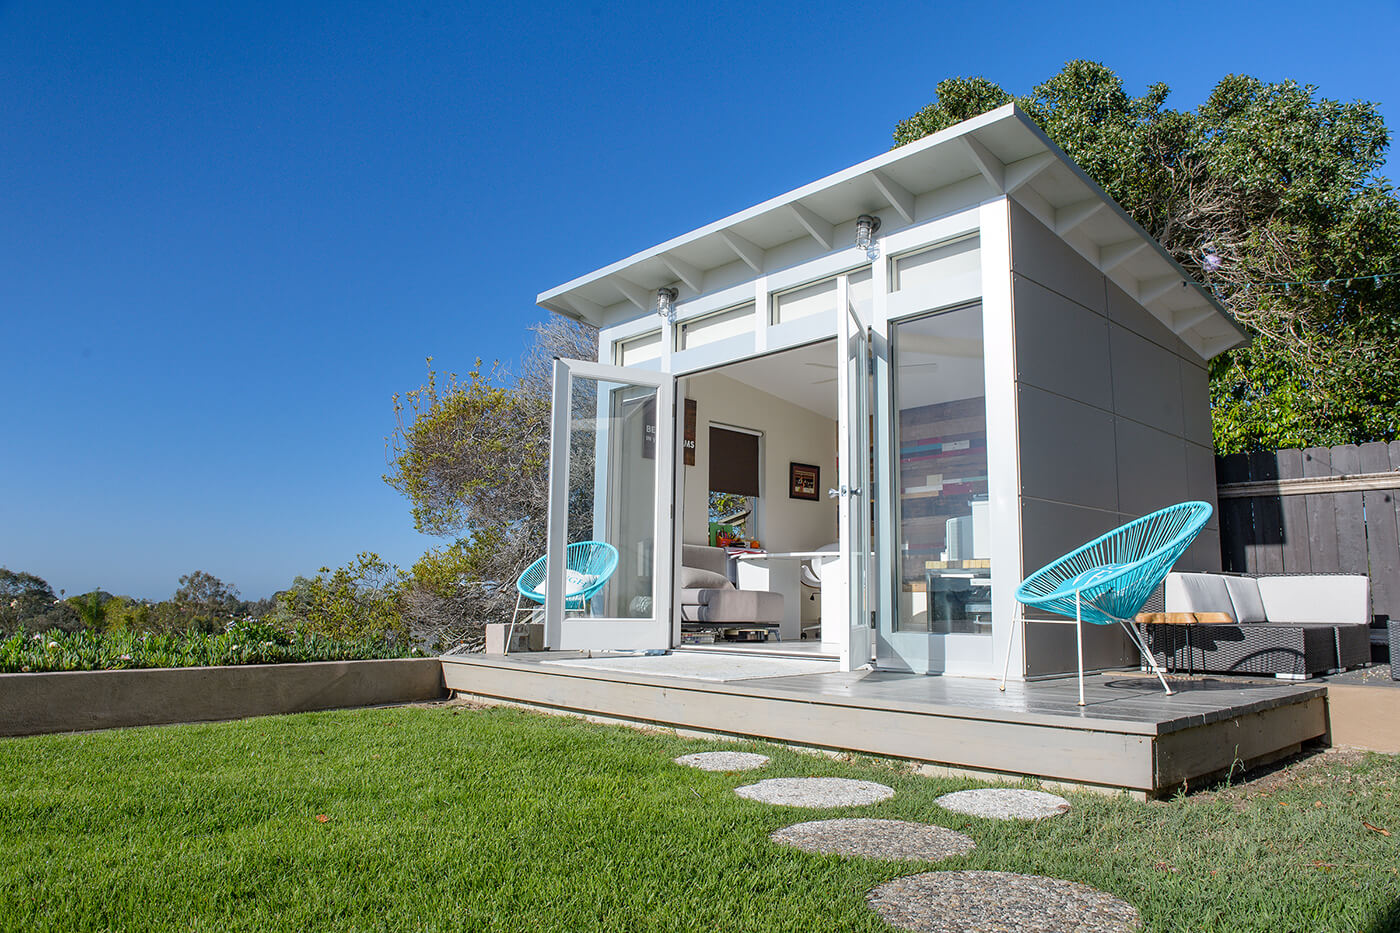 Upgrade Your Backyard With Studio Shed Marvin